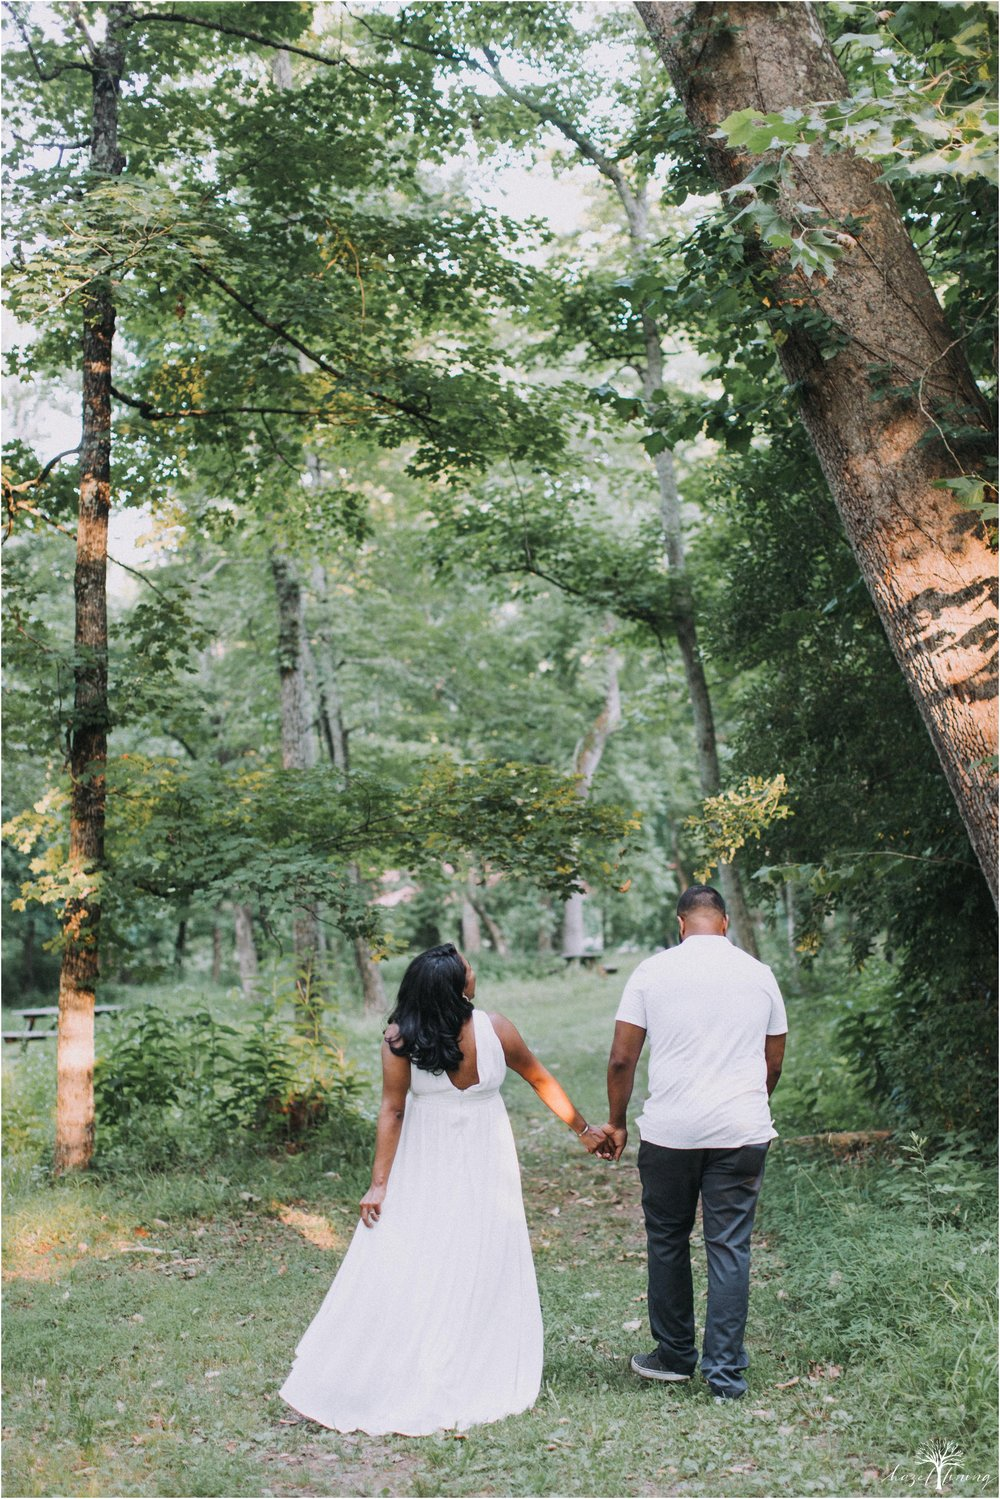 leyka-kristofer-chaparro-ralph-stover-state-park-summer-golden-hour-stream-maternity-session-hazel-lining-travel-wedding-elopement-photography_0046.jpg